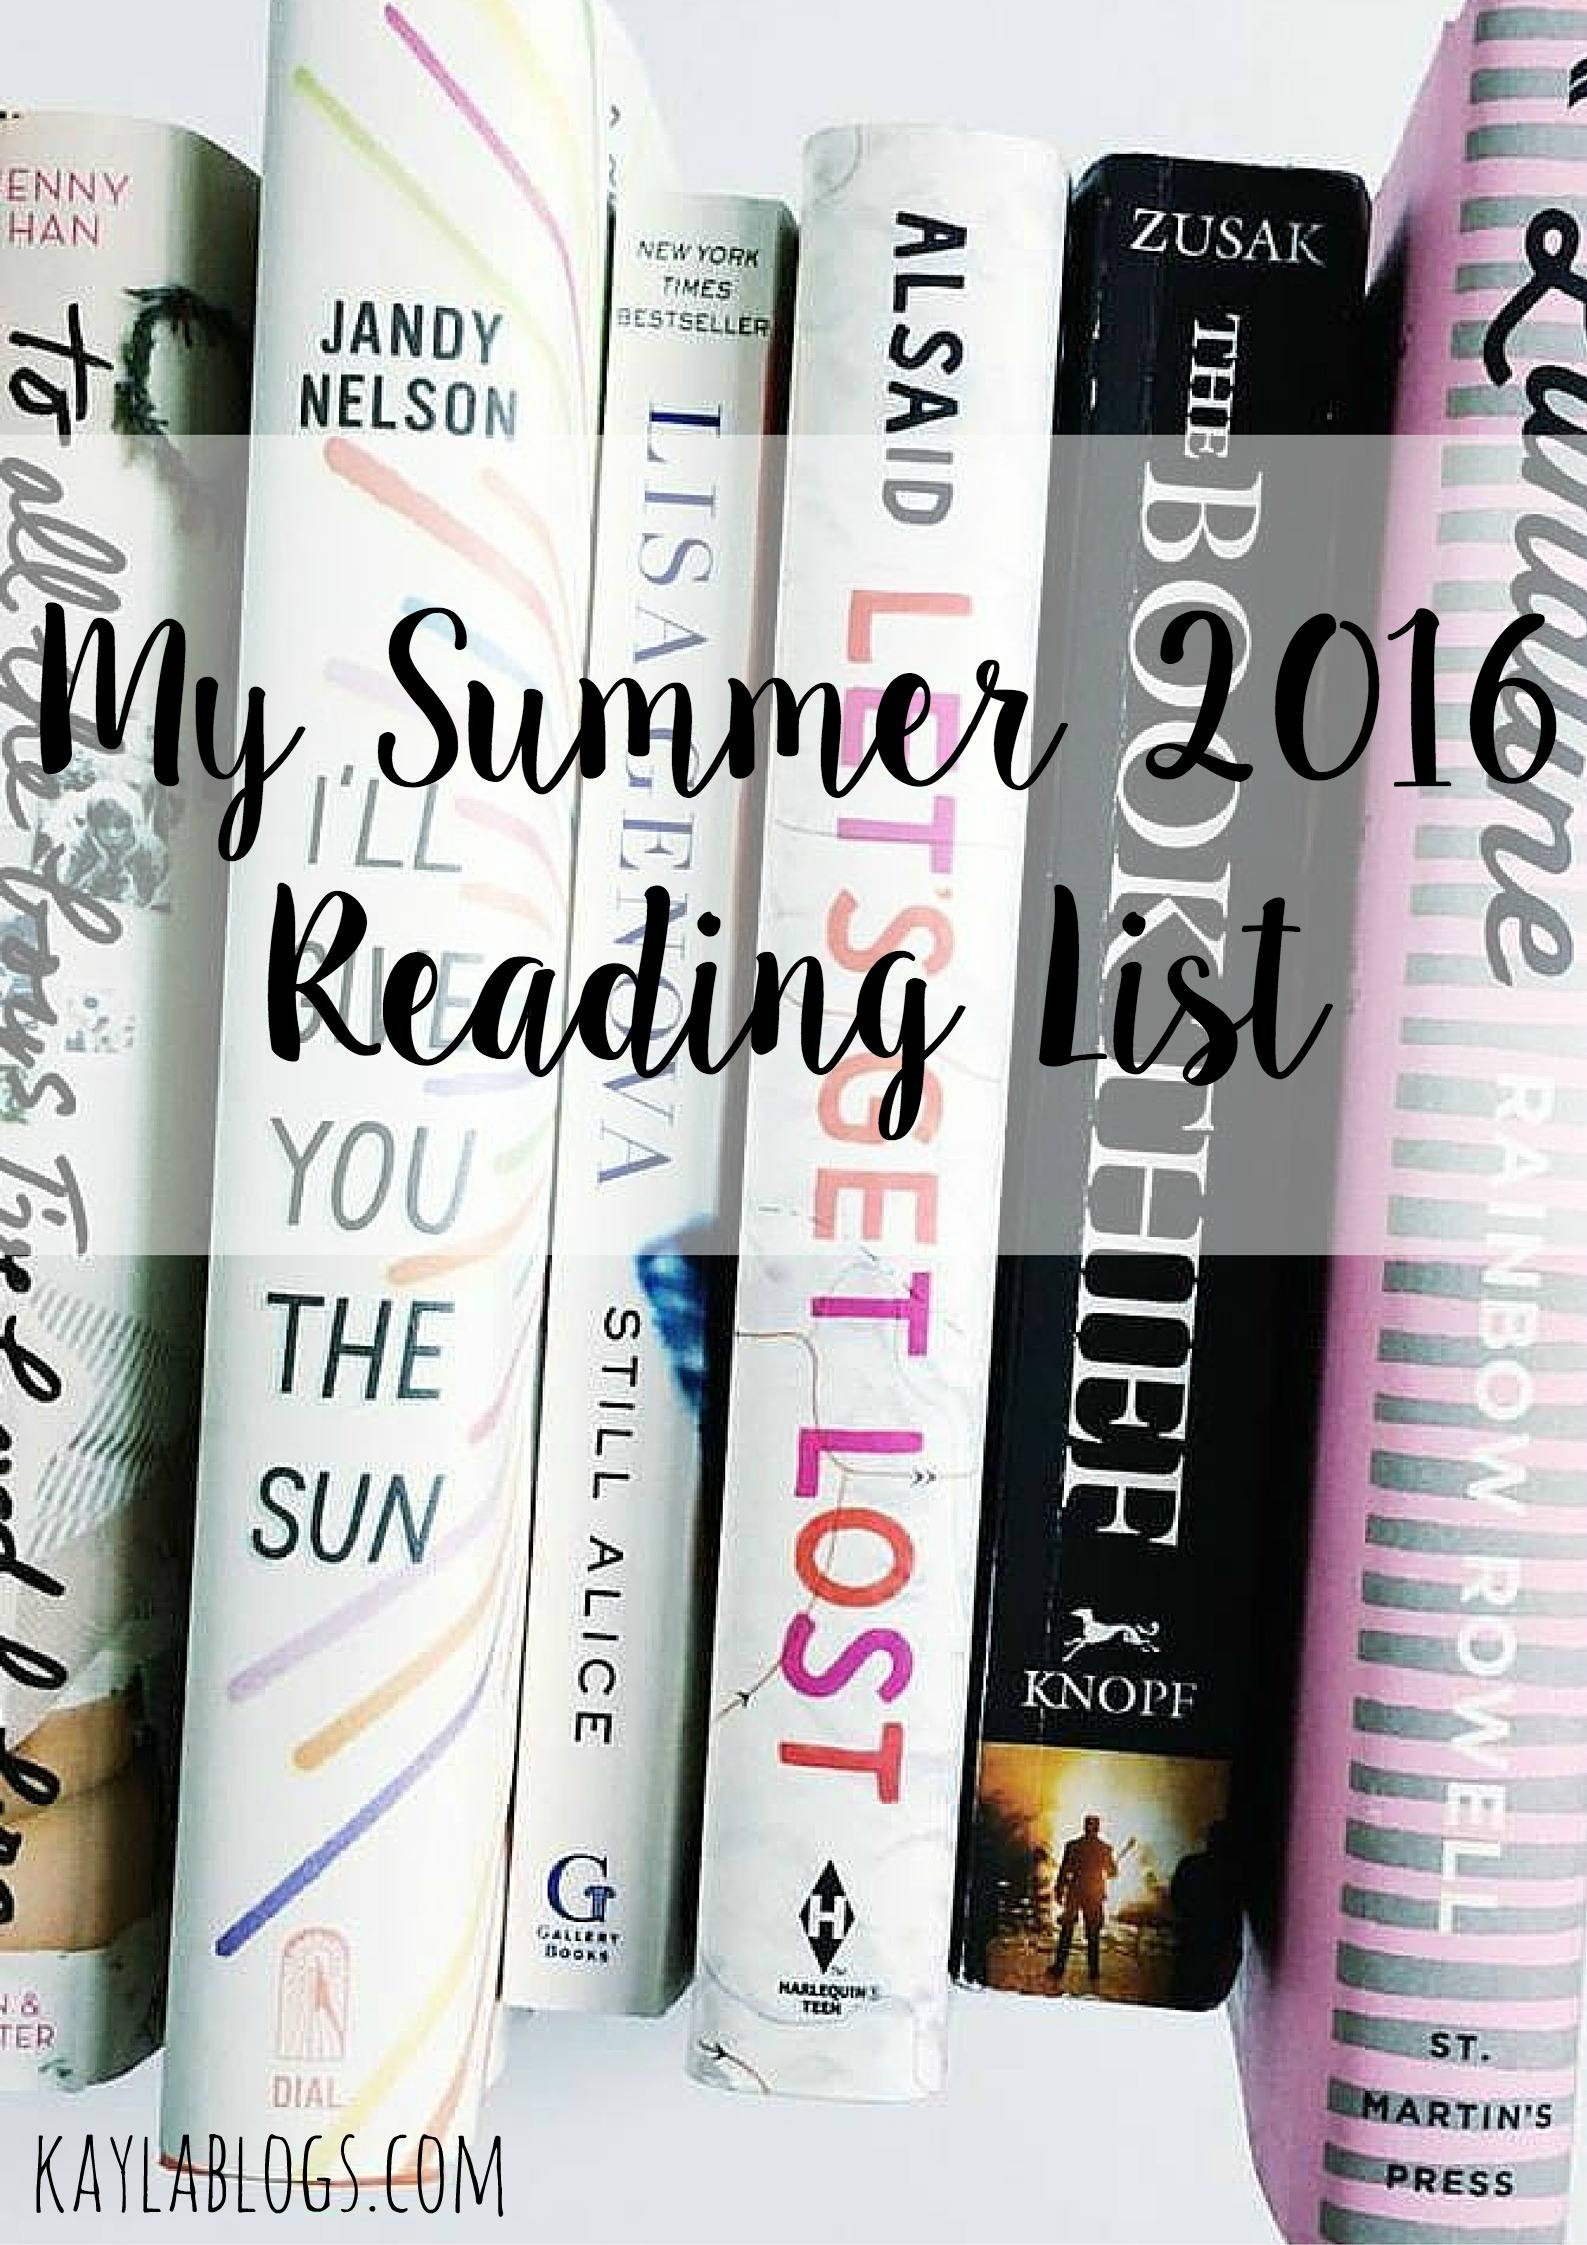 My Summer 2016 Reading List